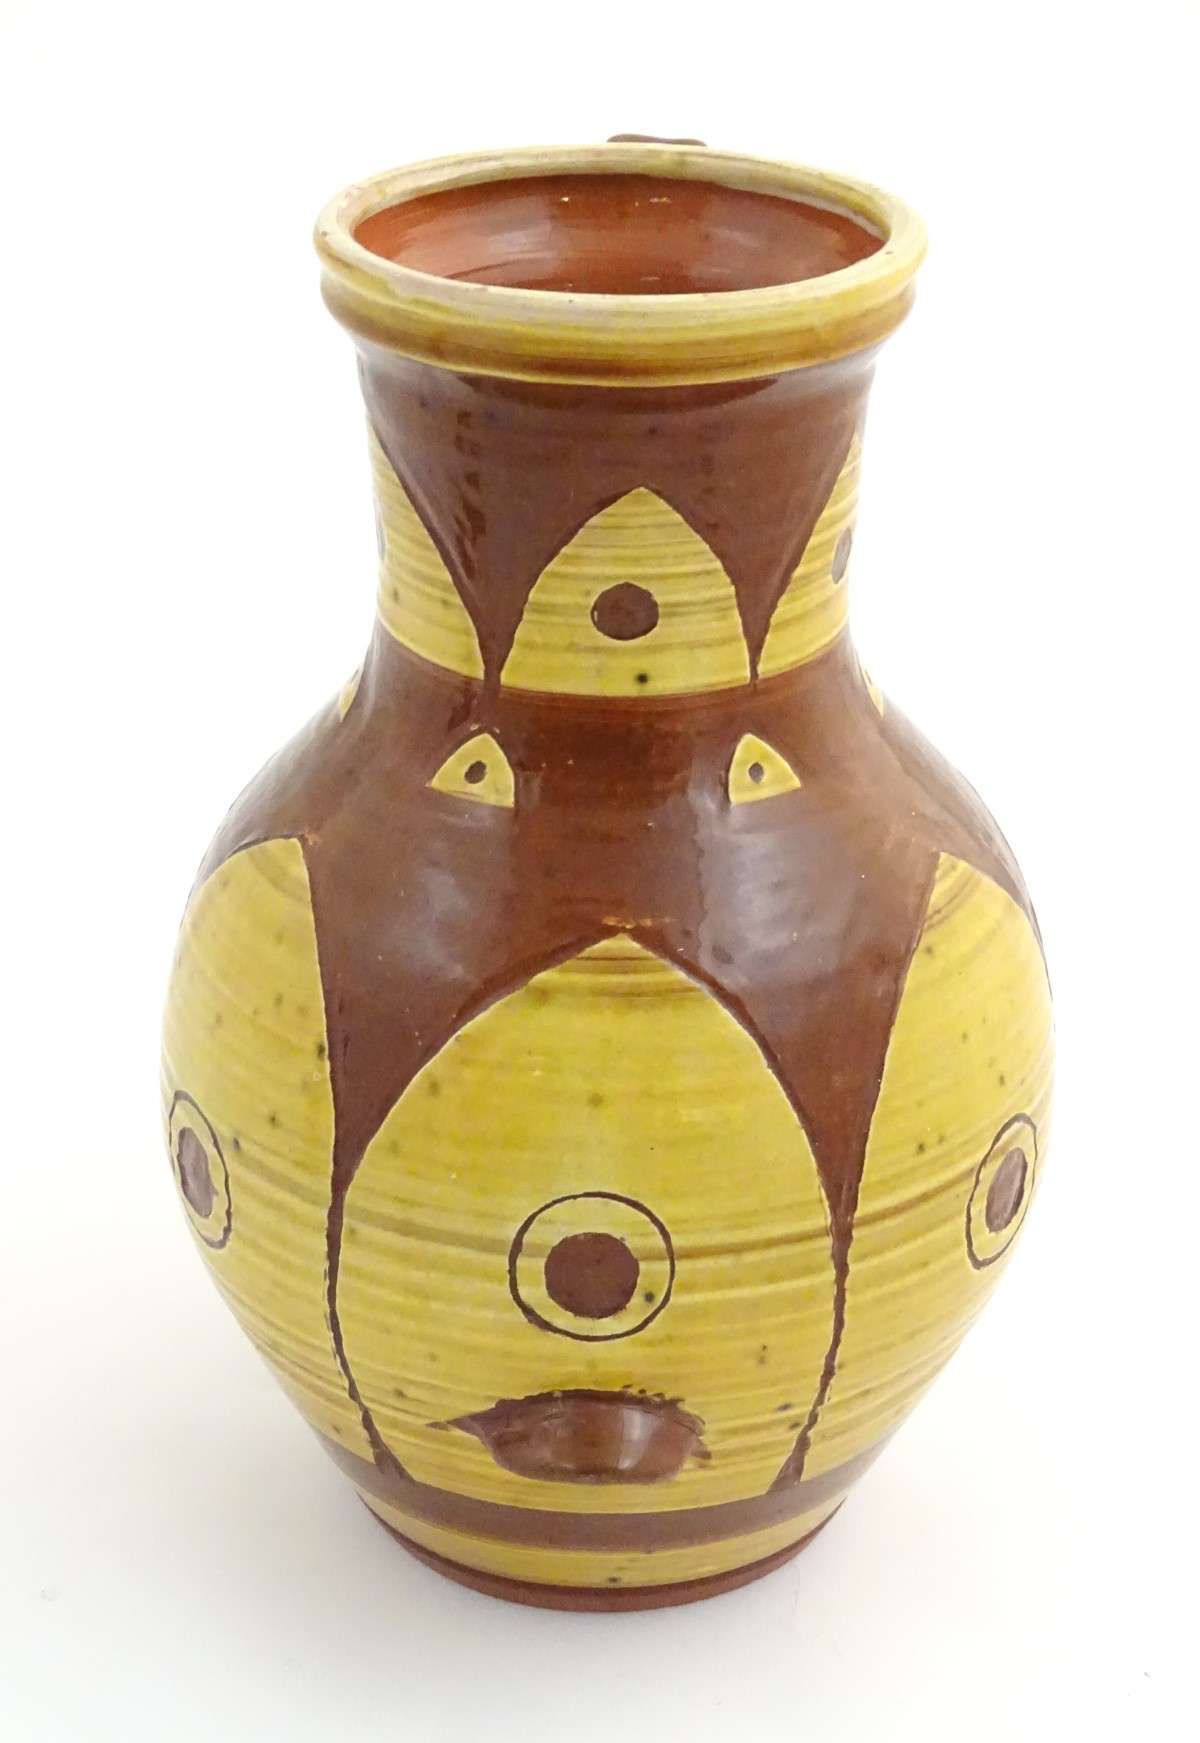 Lot 50 - A large earthenware studio pottery baluster vase / jug with single handle,